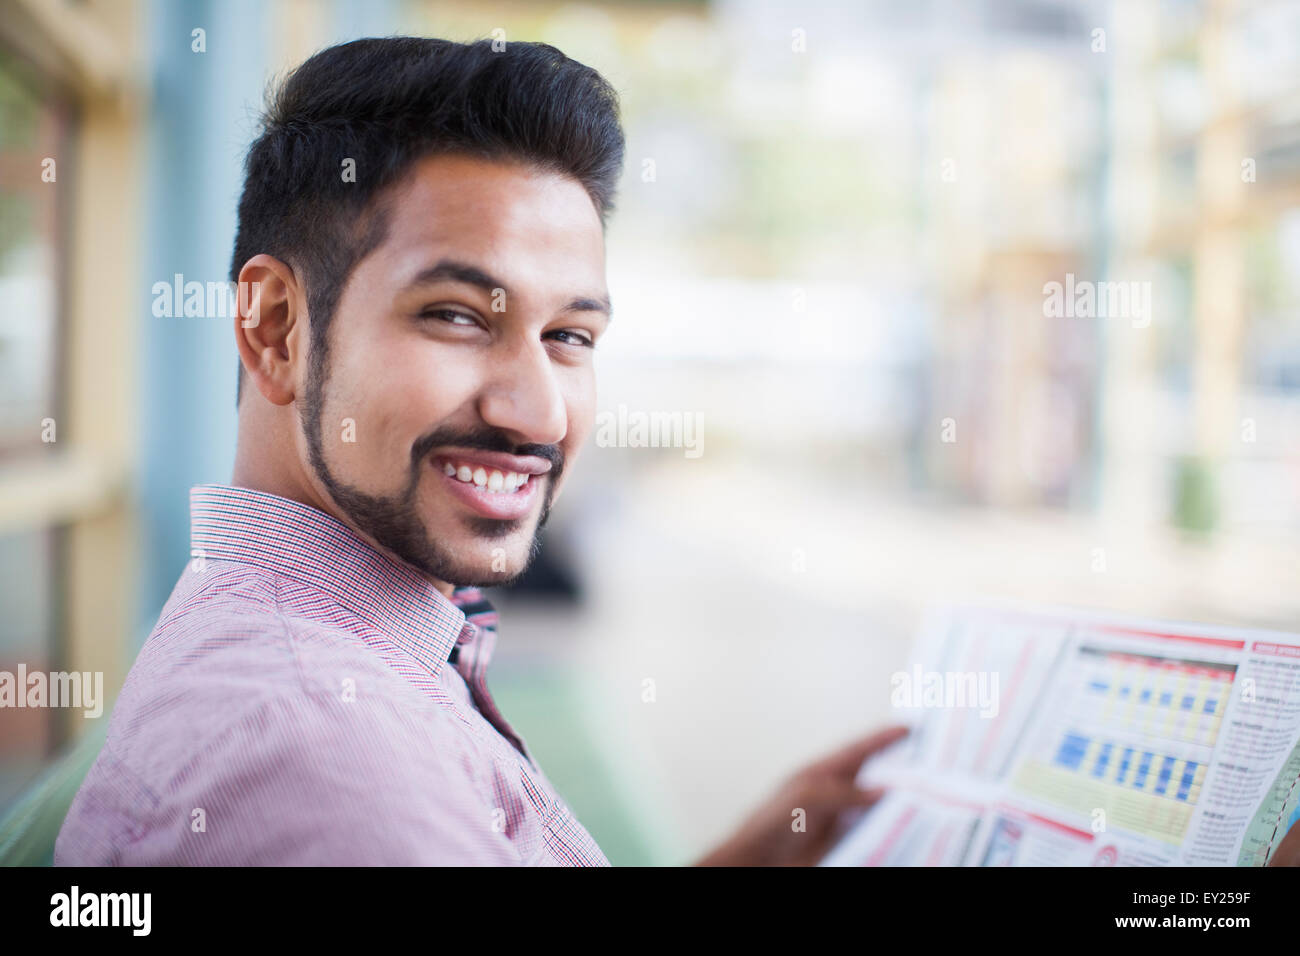 Young businessman reading newspaper in train station - Stock Image